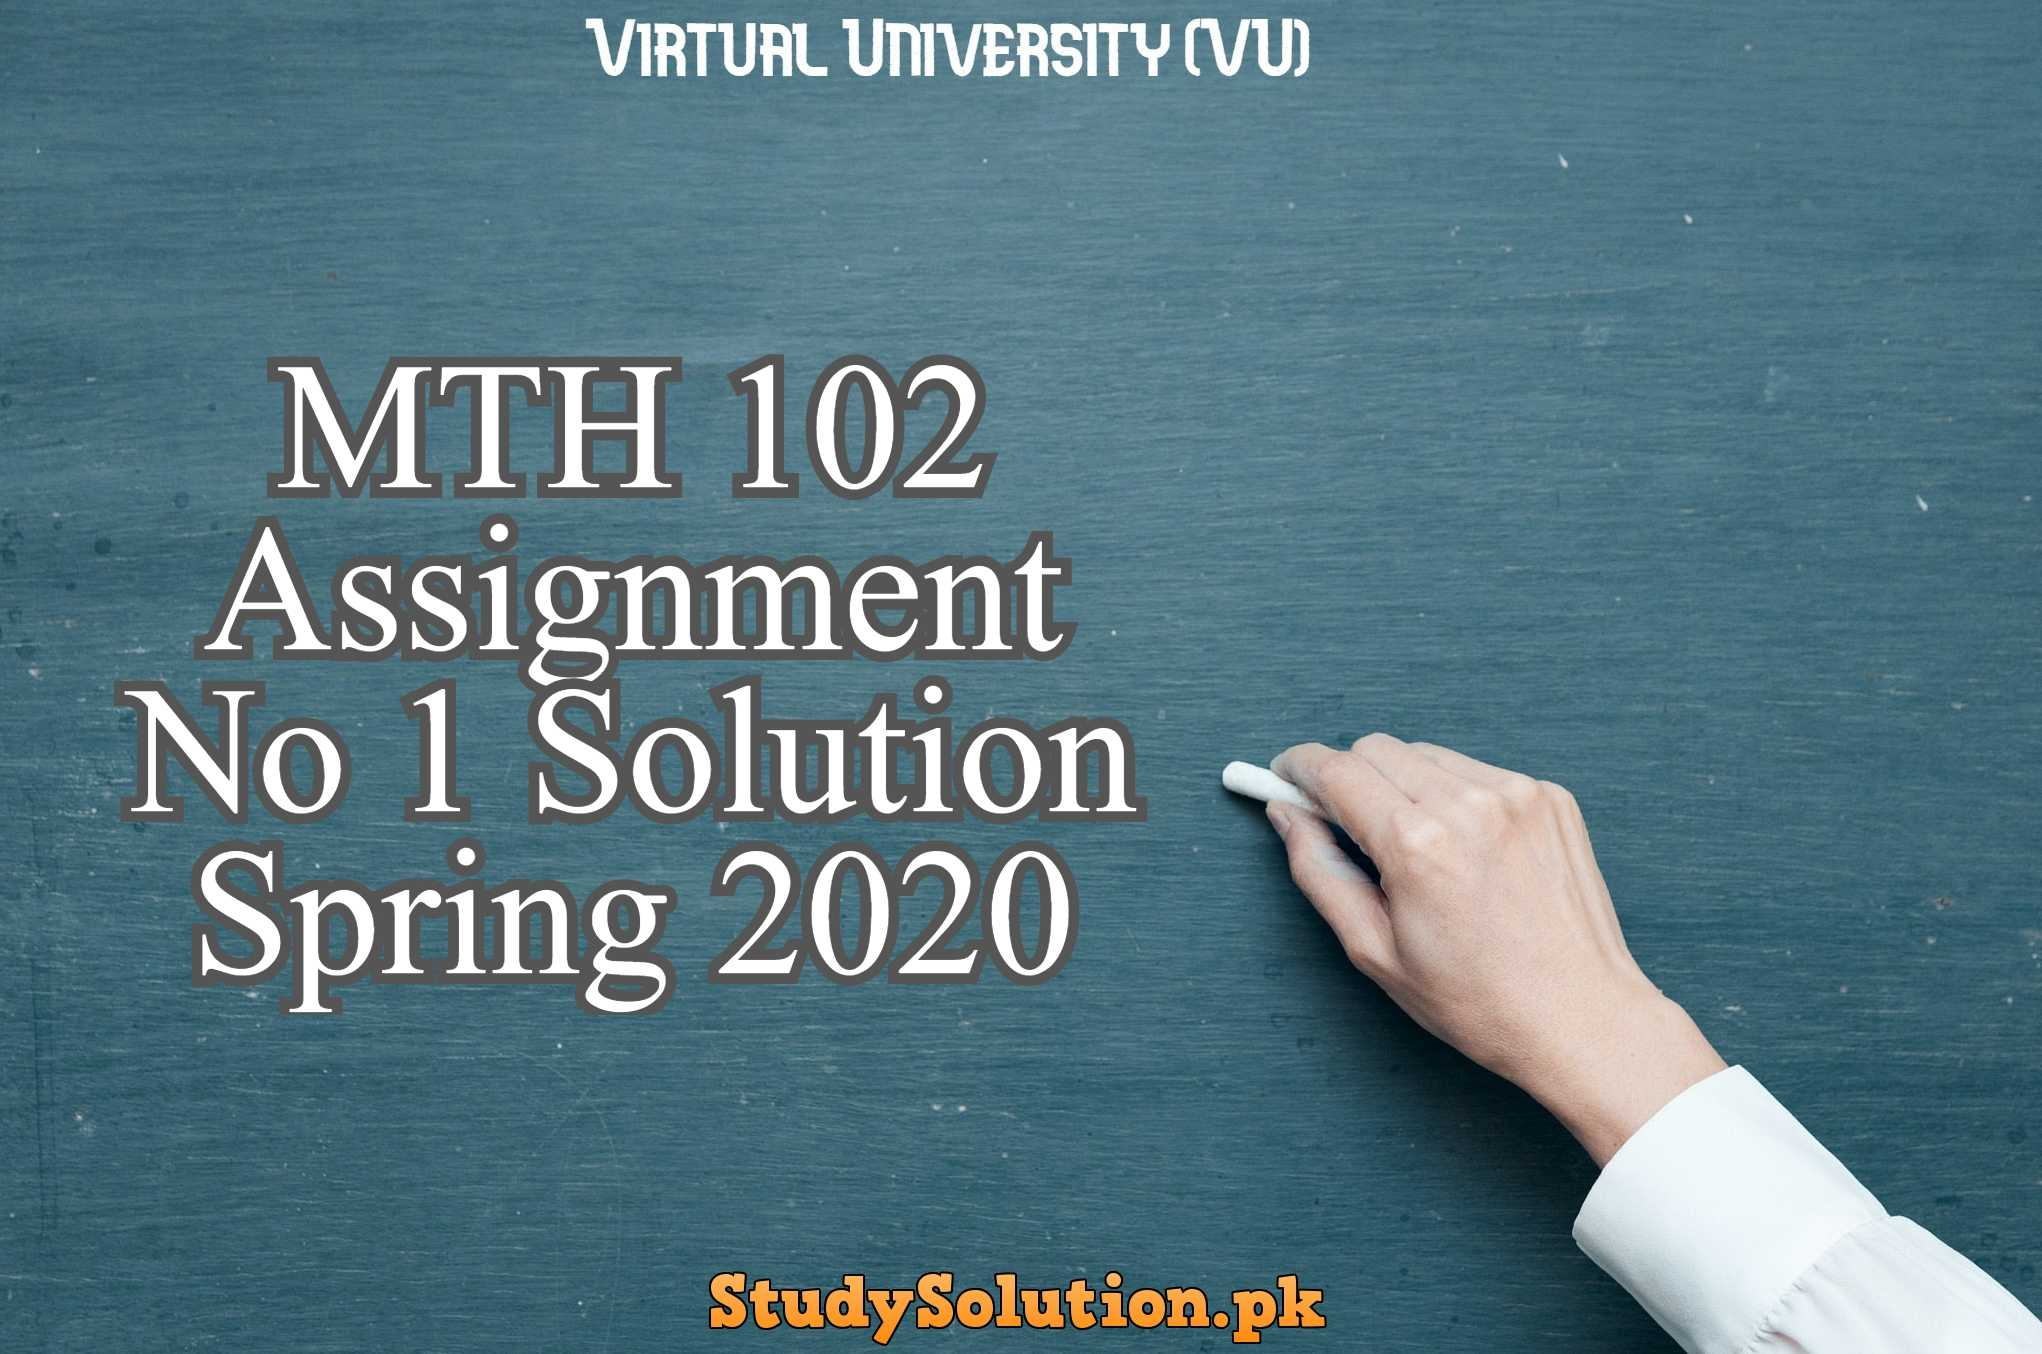 MTH 102 Assignment No 1 Solution Spring 2020